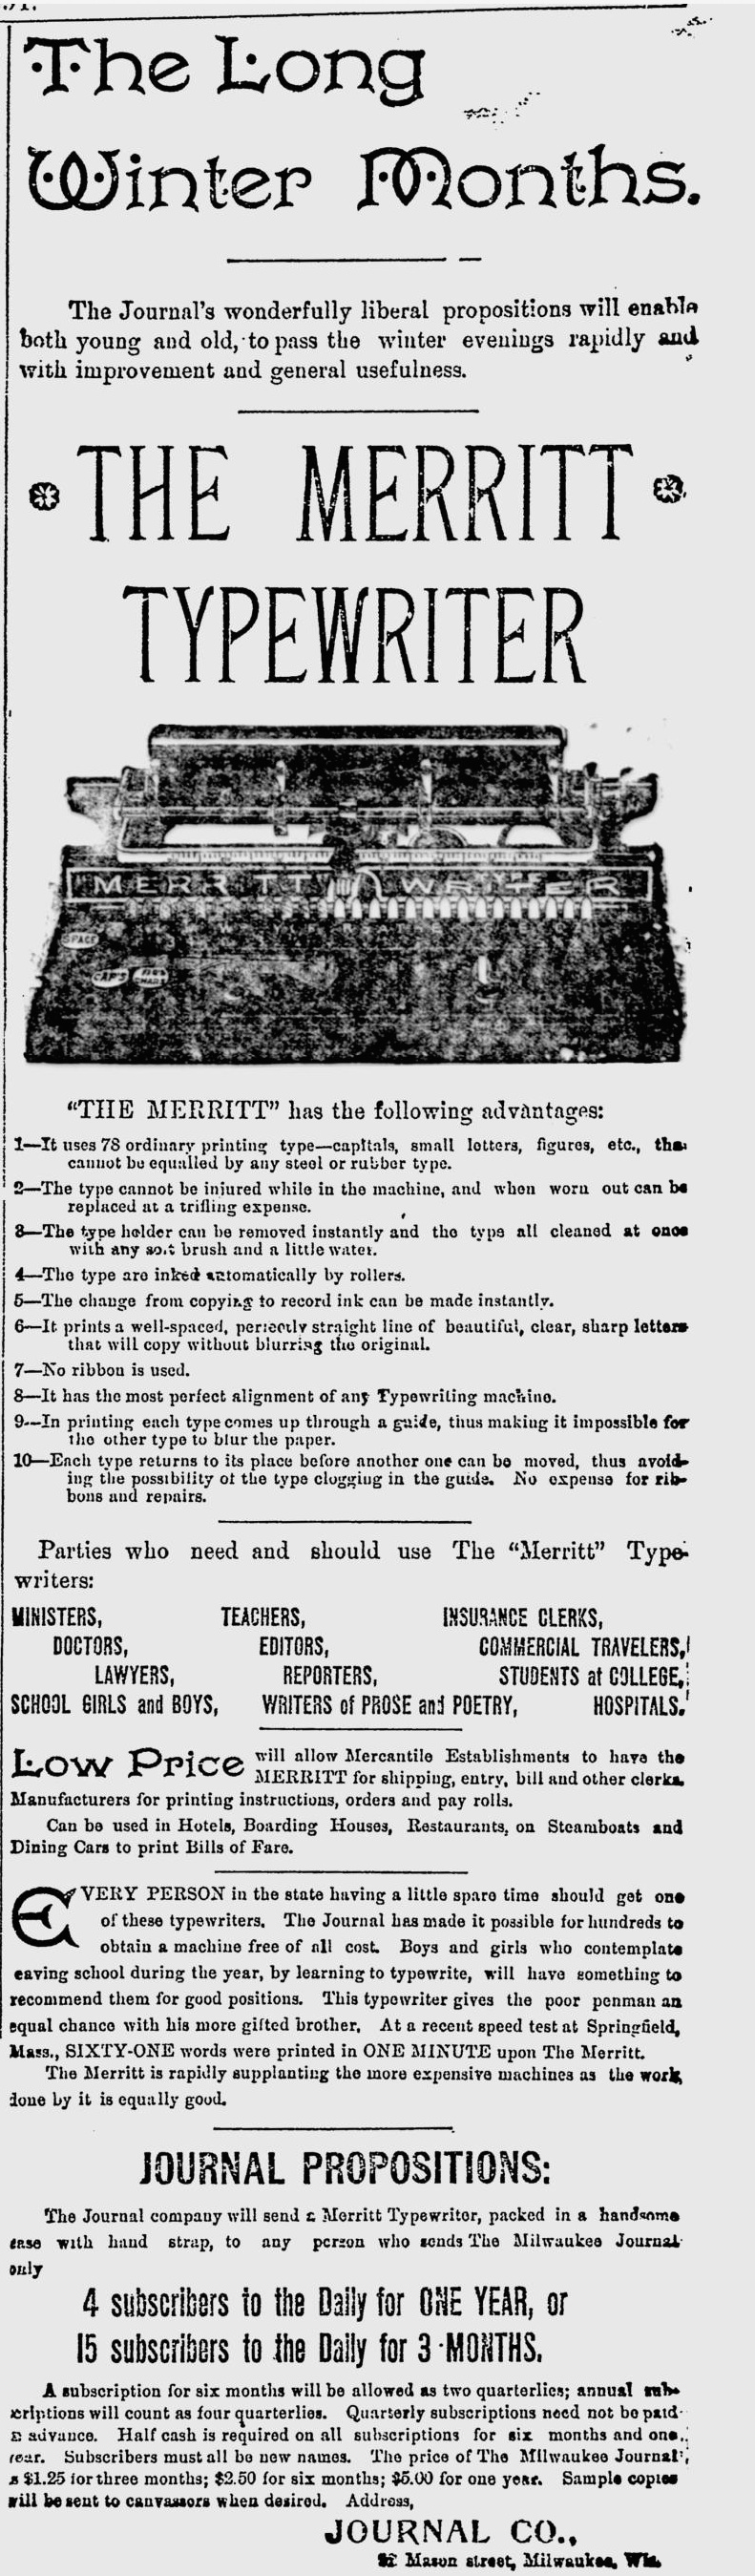 The Milwaukee Journal - Dec 23, 1891 - Merritt Typewriter Ad